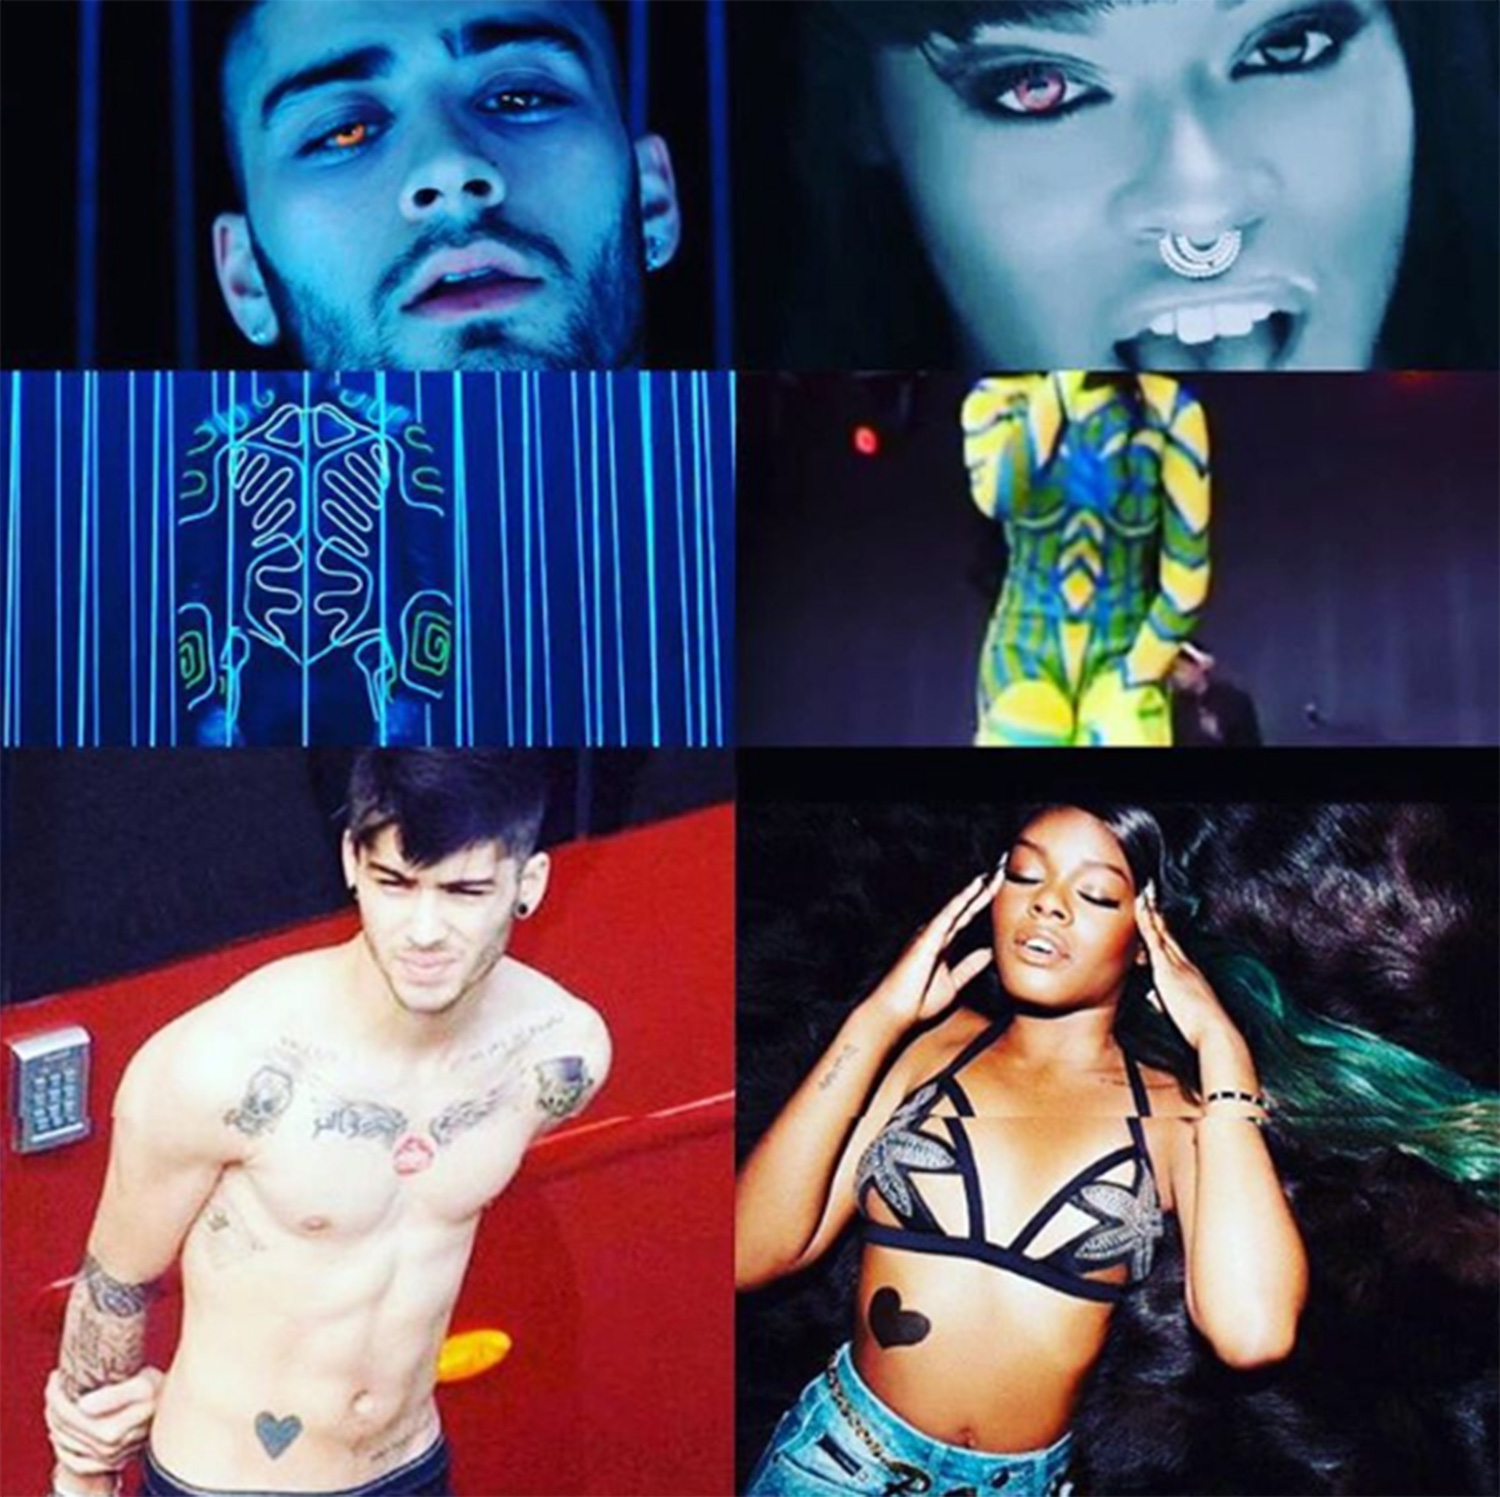 azealia banks removed after zayn malik comments 2016 gossip